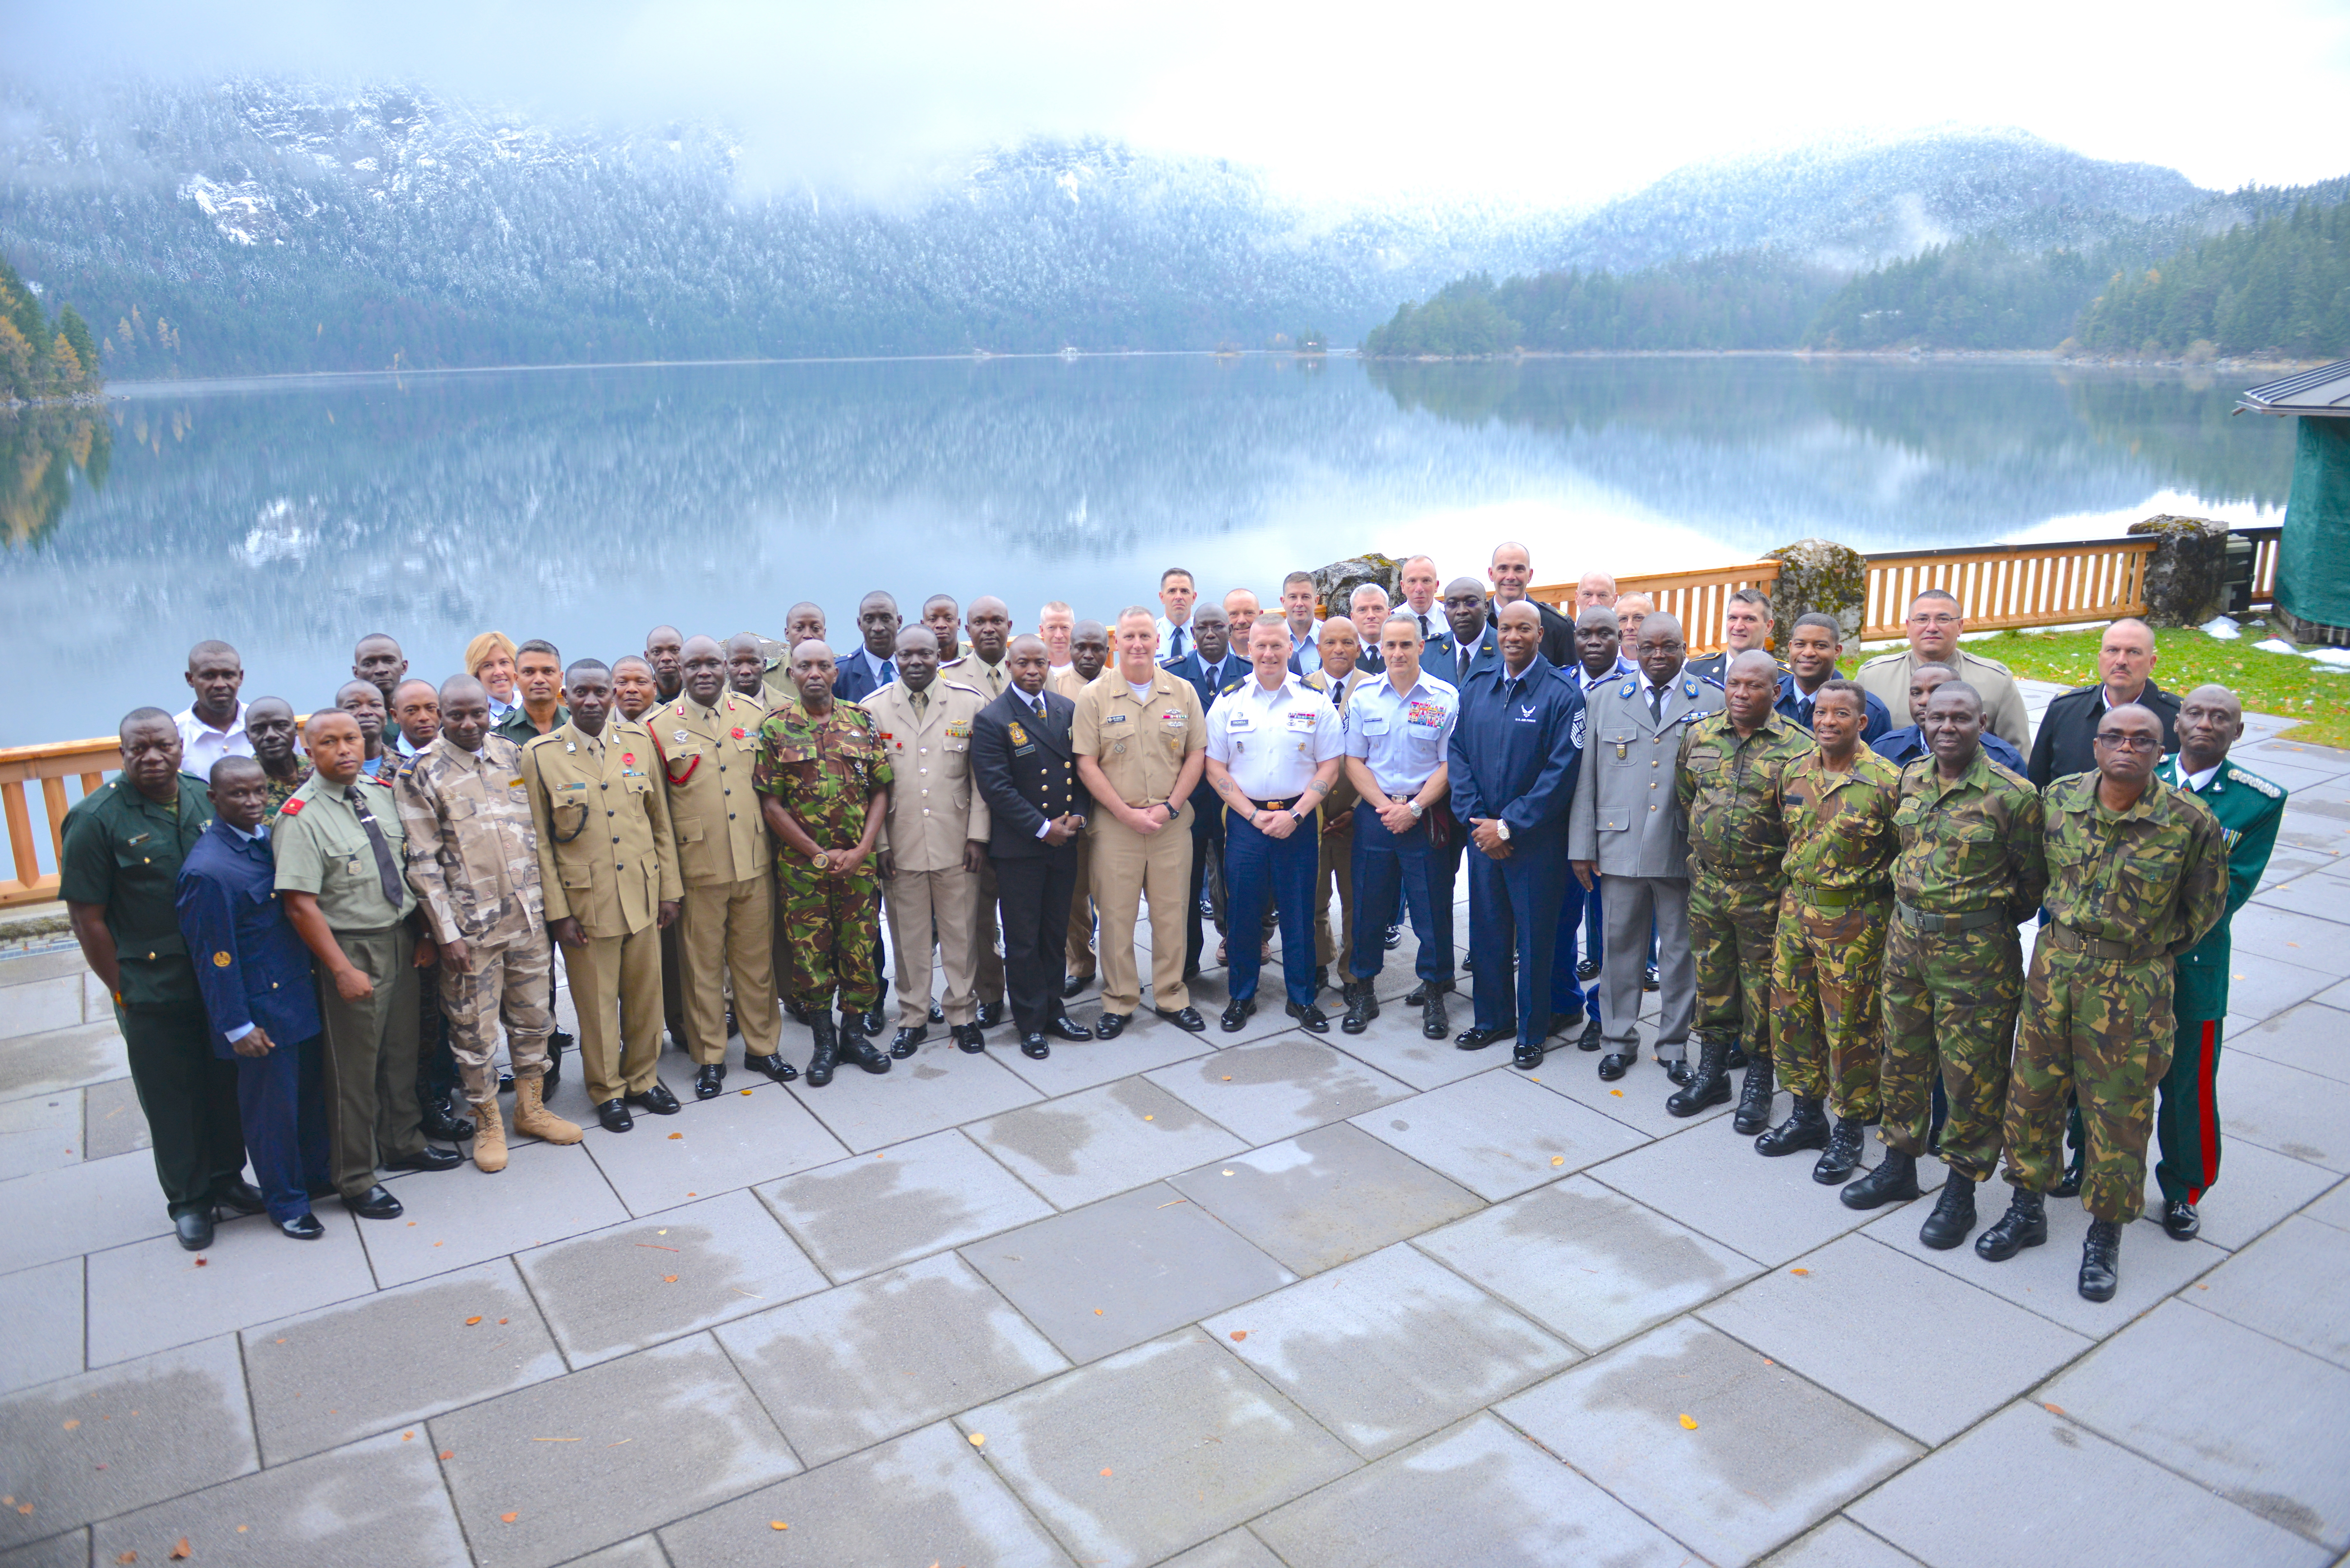 GRAINAU, Germany - Senior Enlisted Leaders from more than 20 African nations and the U.S. met during the first ever Africa Senior Enlisted Leader Conference in Grainau, Germany Nov. 6-10, 2017. The purpose of the conference was to discuss shared challenges and opportunities.